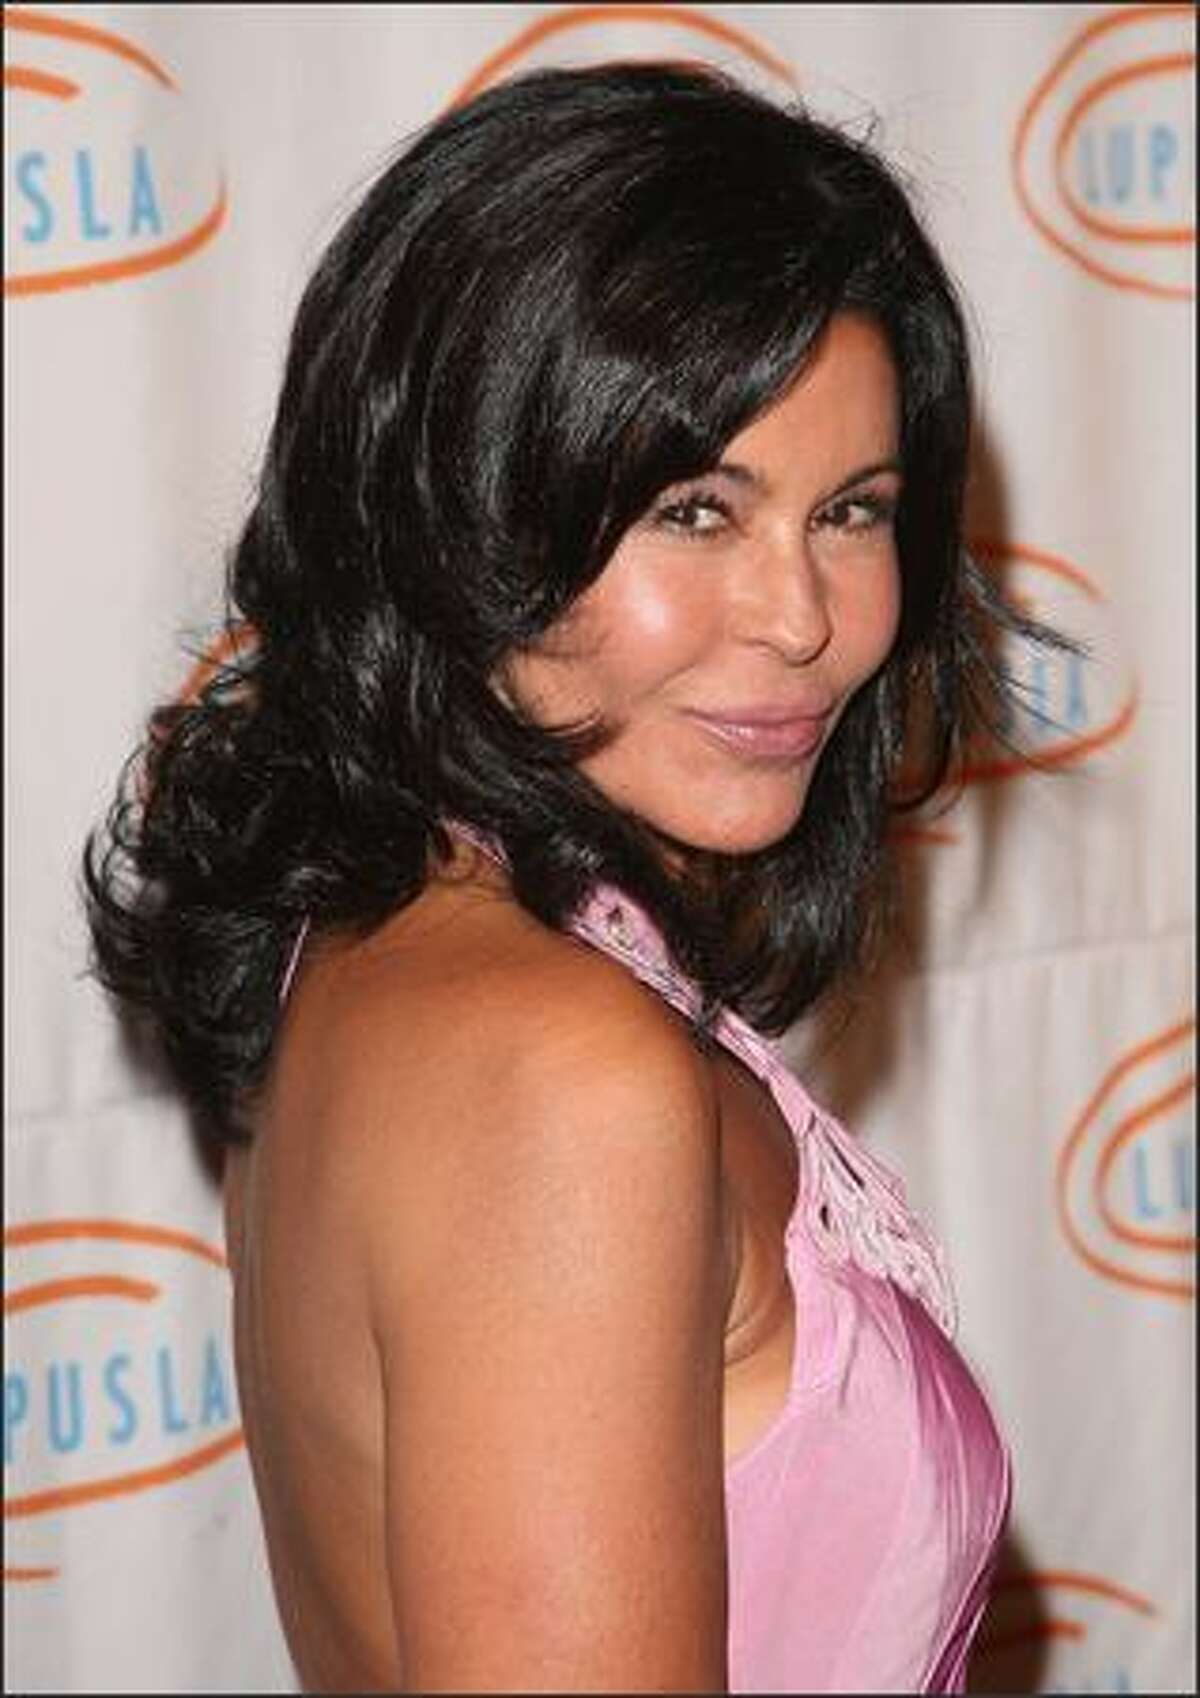 Actress Maria Conchita Alonso attends the 9th annual Lupus LA Orange Ball at the Beverly Wilshire Four Seasons Hotel in Beverly Hills, California.